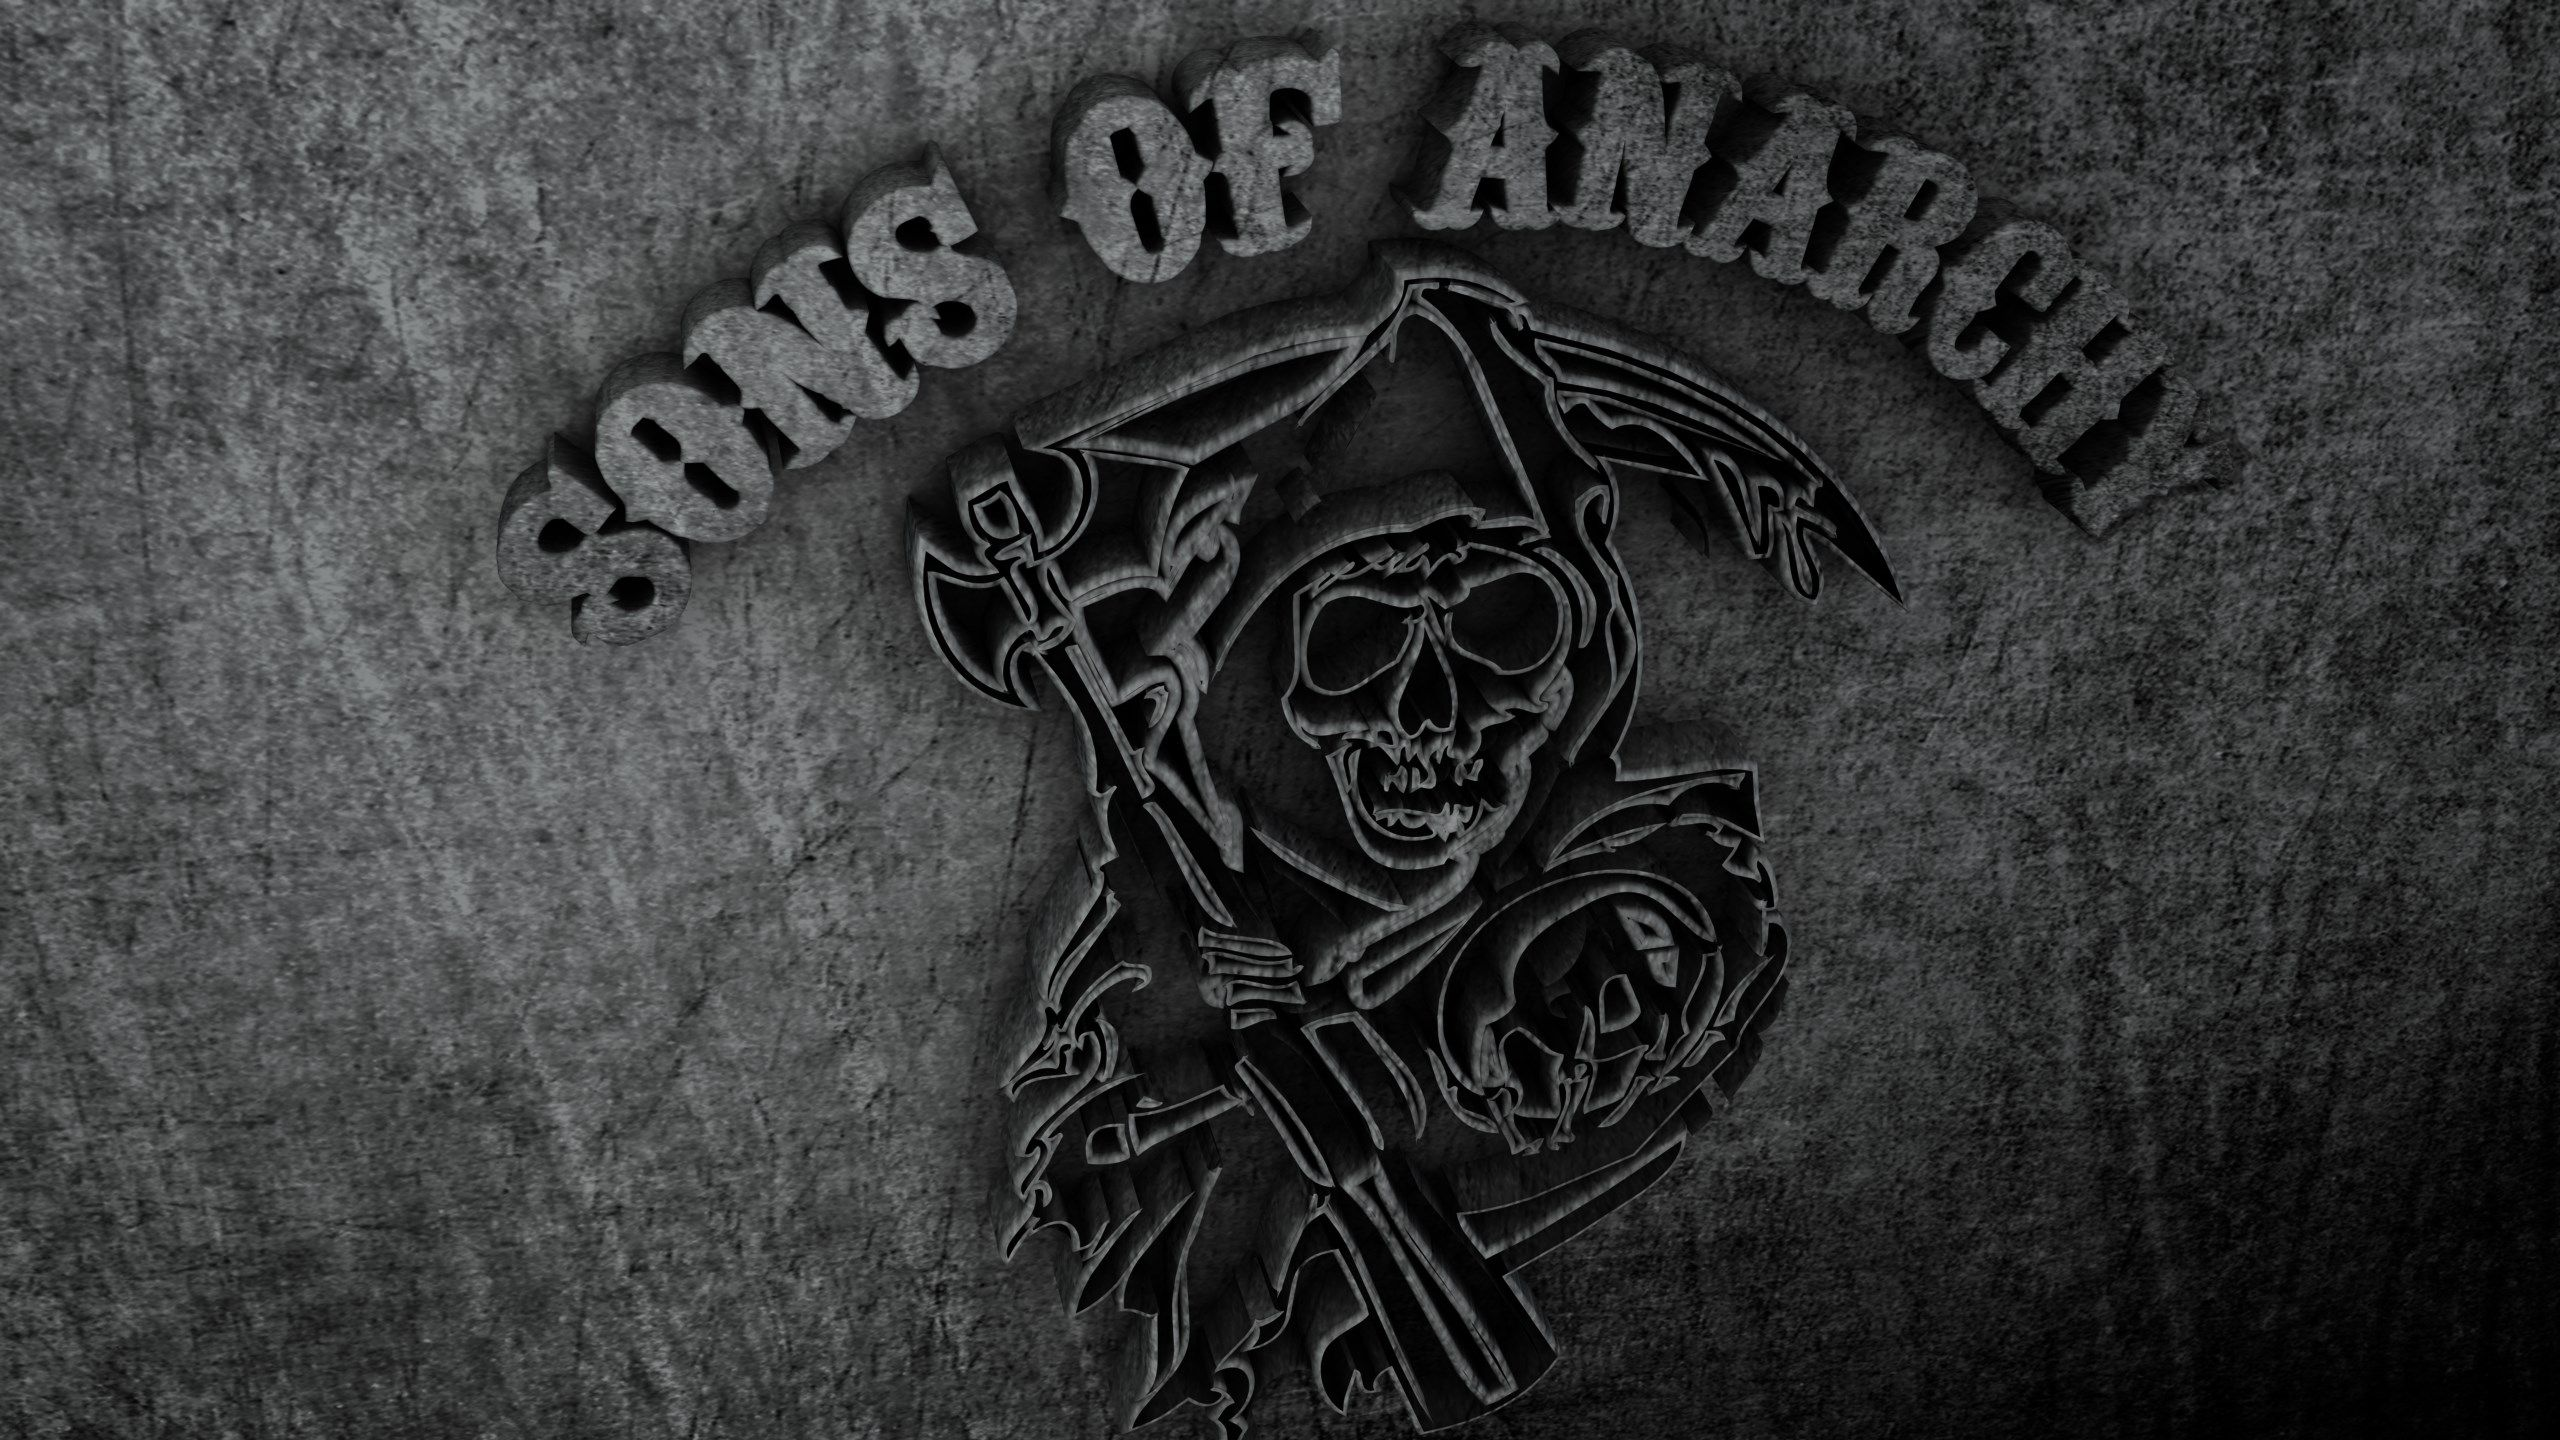 Sons Of Anarchy Monochrome Tv Series 4000x3000 Wallpaper